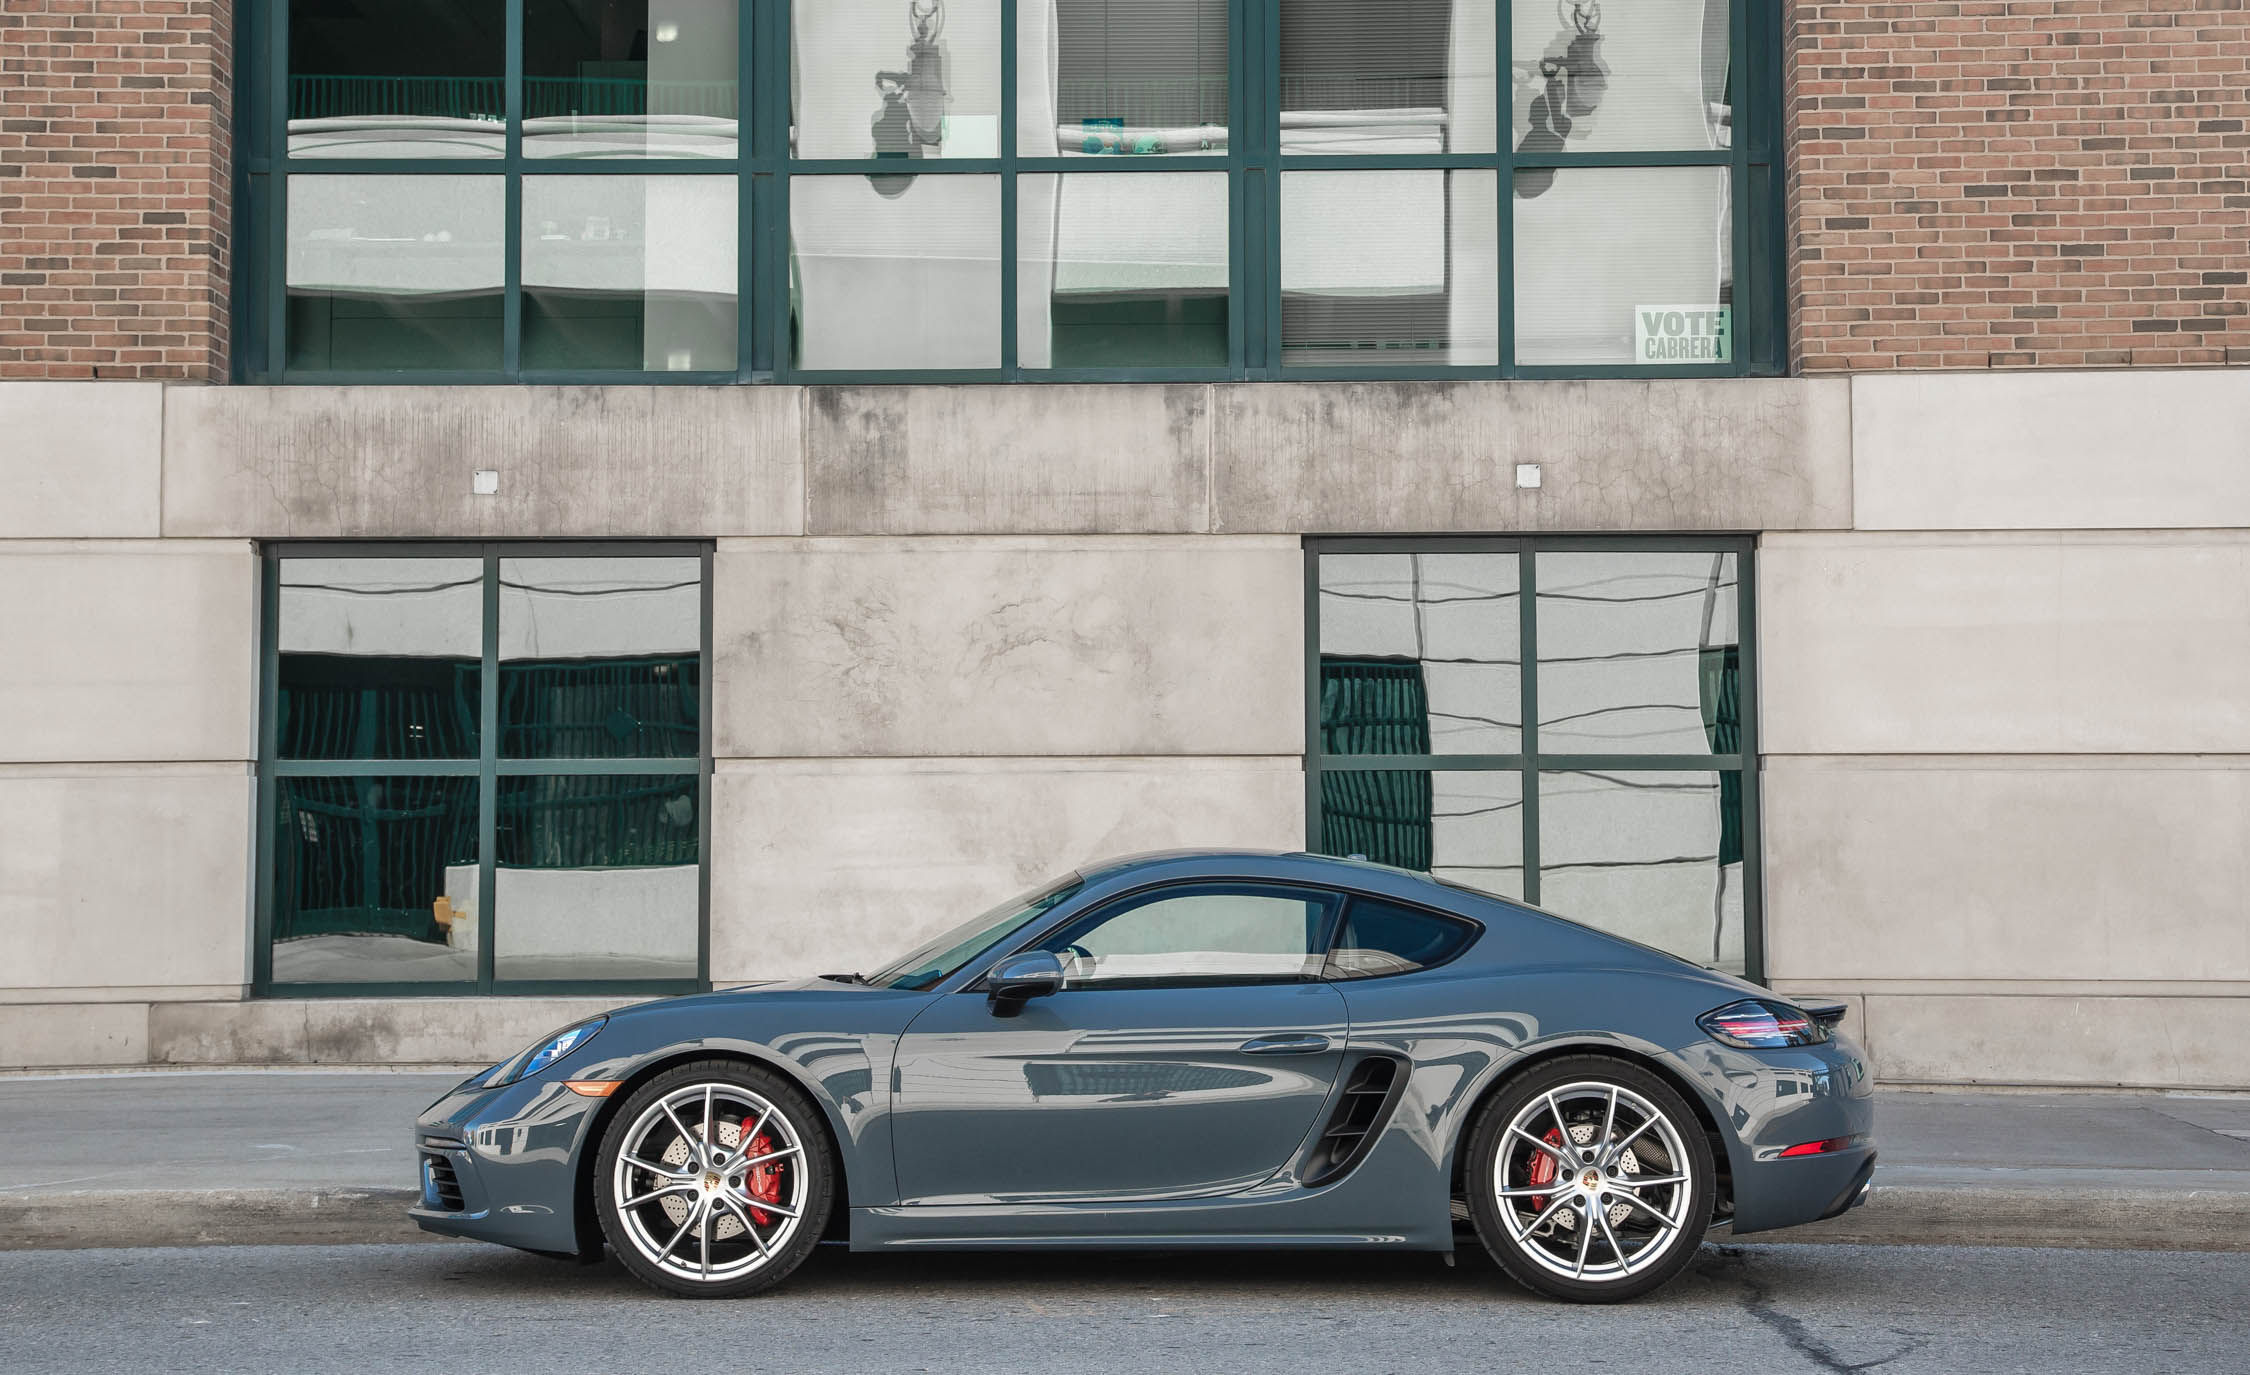 2017 Porsche 718 Cayman S (View 4 of 9)